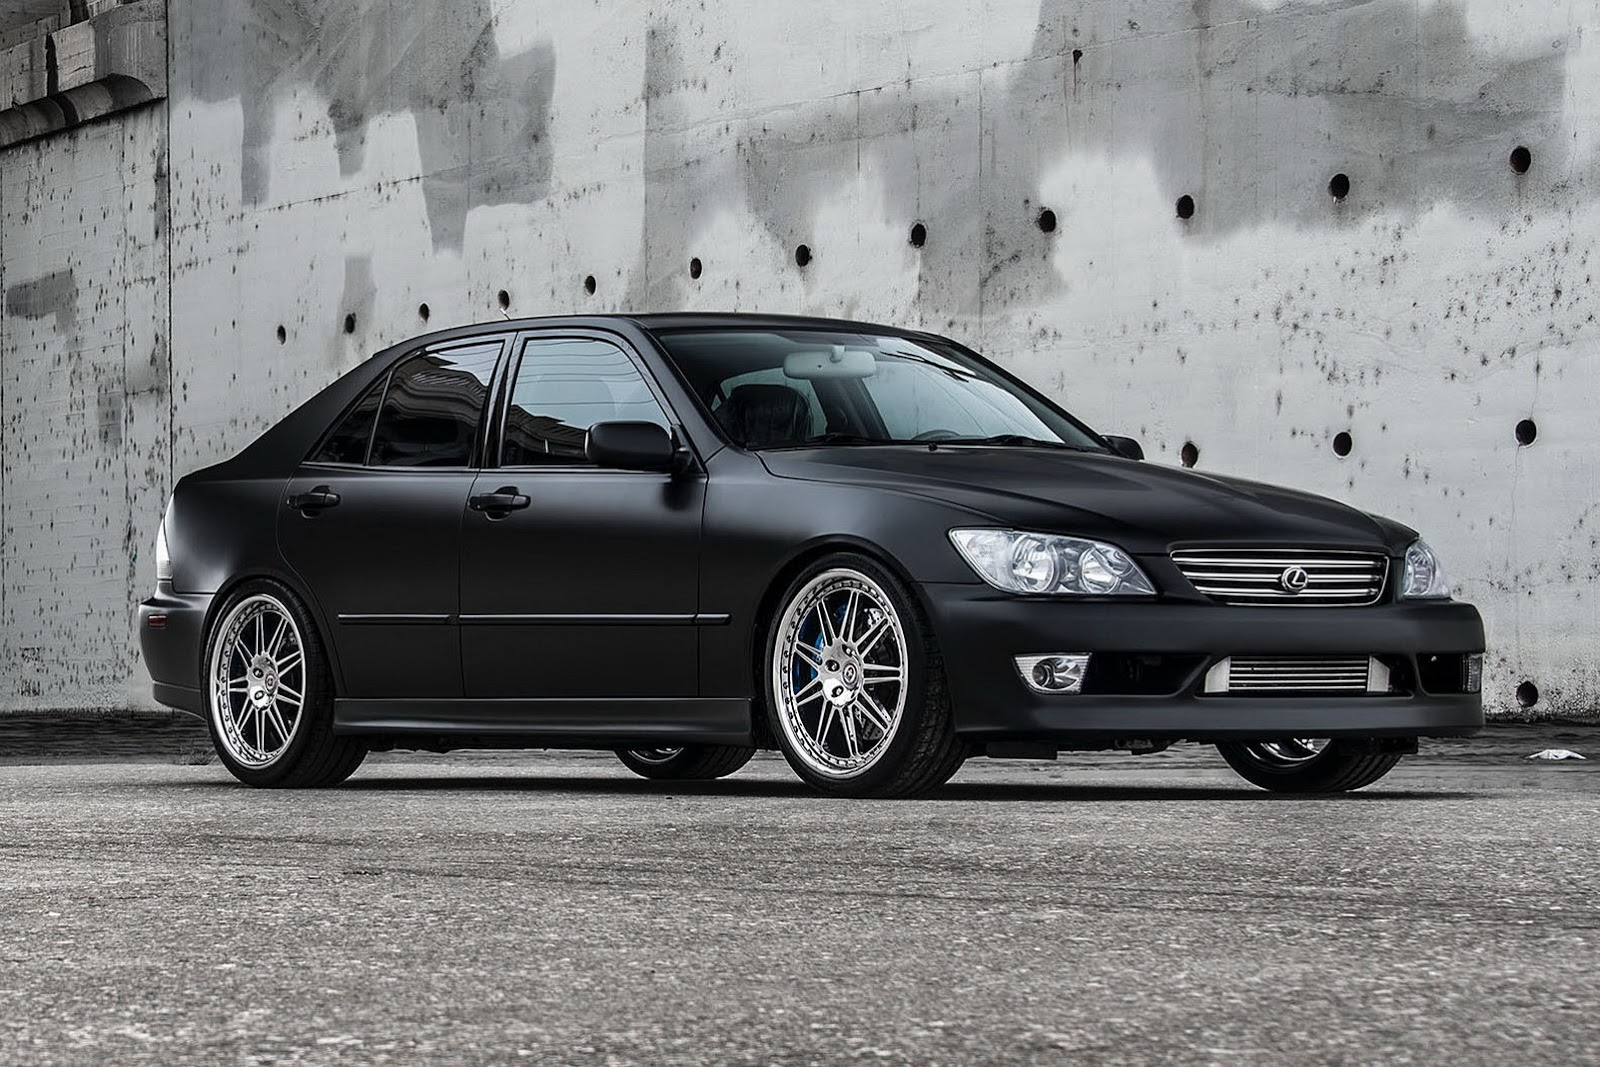 2004 Lexus IS 300 Cortez Front Quarter